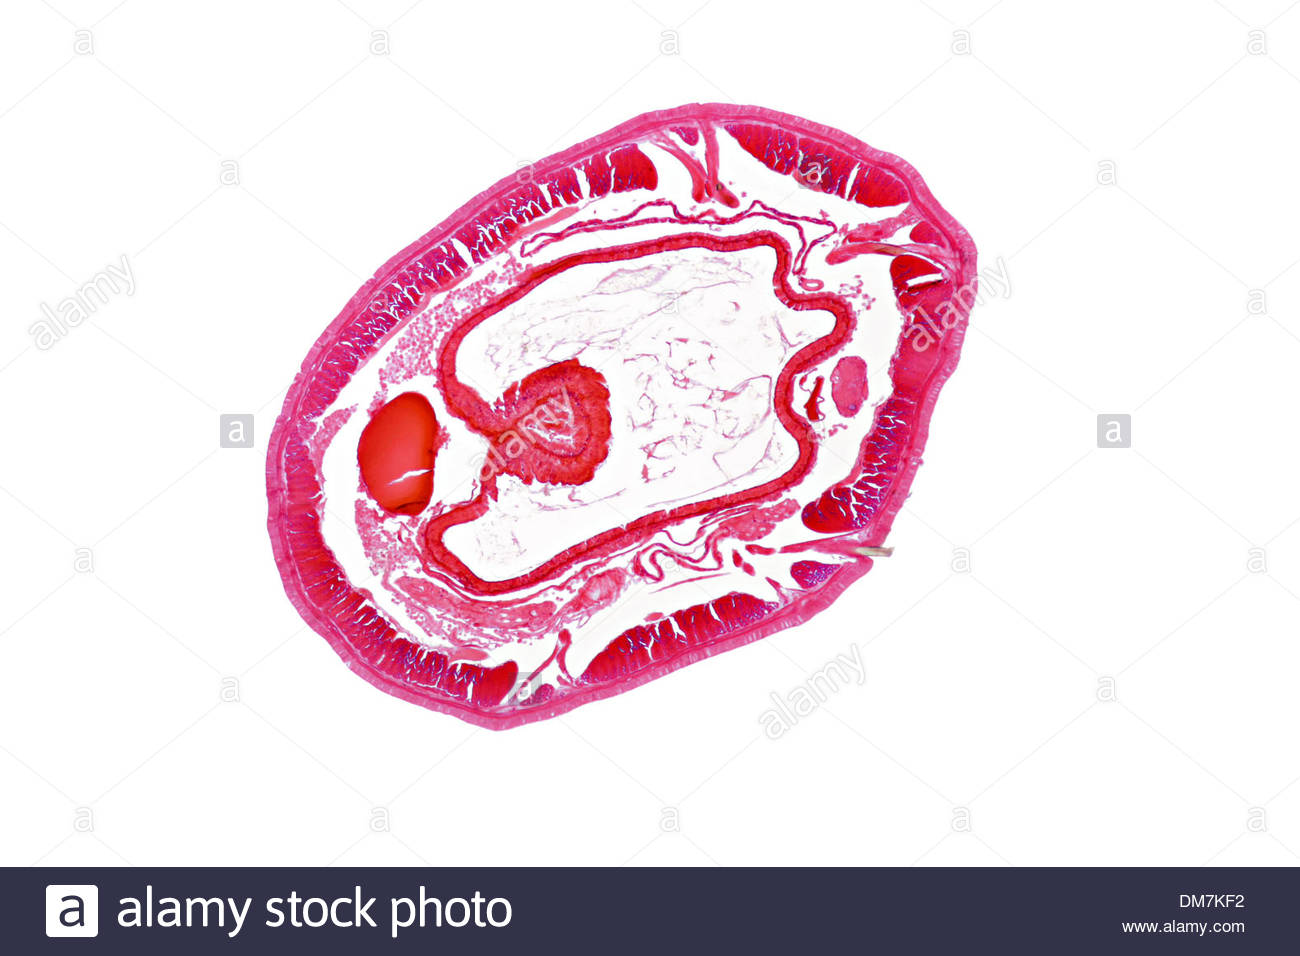 earthworm, lumbricidae, photomicrography in transmitted light bright field illumination, microtome cut, durable preparation - Stock Image